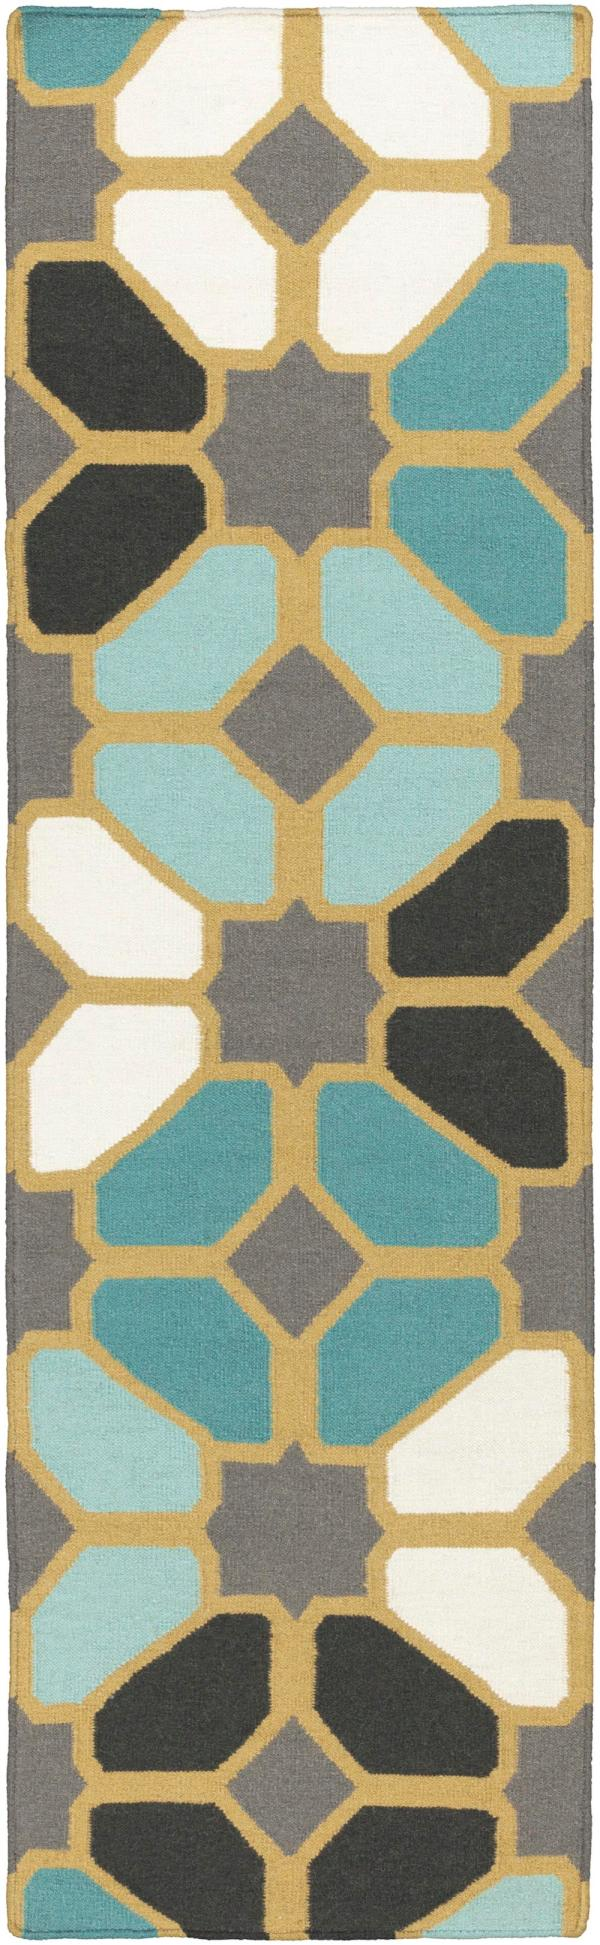 Surya Frontier Ft459 Blue Area Rug Free Shipping